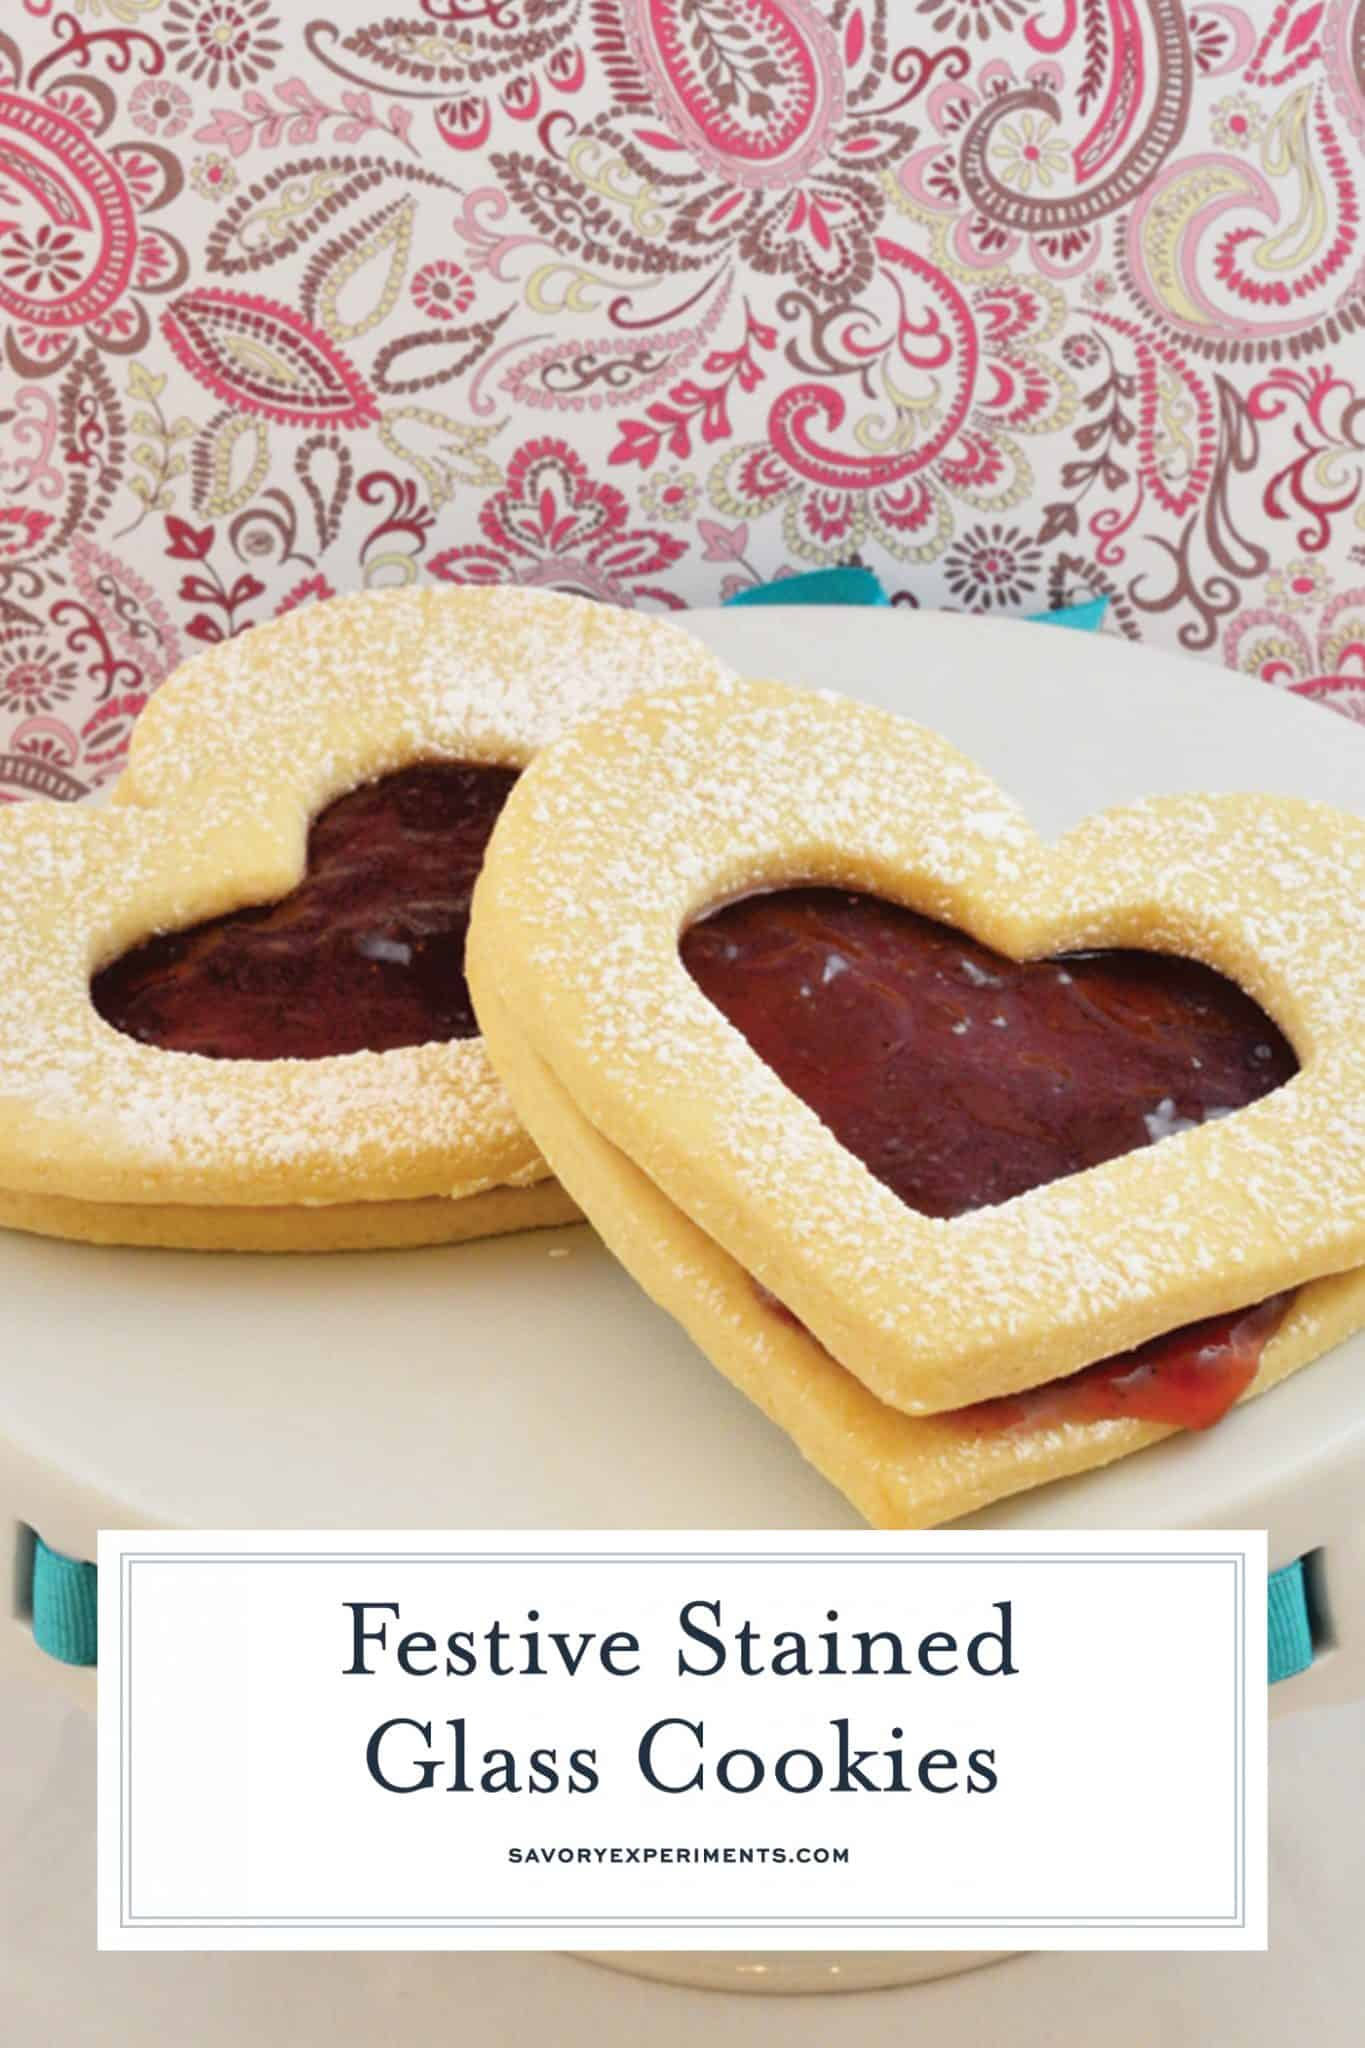 Stained Glass Cookies are the perfect sweet treat for Valentines Day! A delicious sugar cookie sandwich with strawberry jam in the middle! #stainedglasscookies #cookiesforvalentine'sday #jamcookies www.savoryexperiments.com